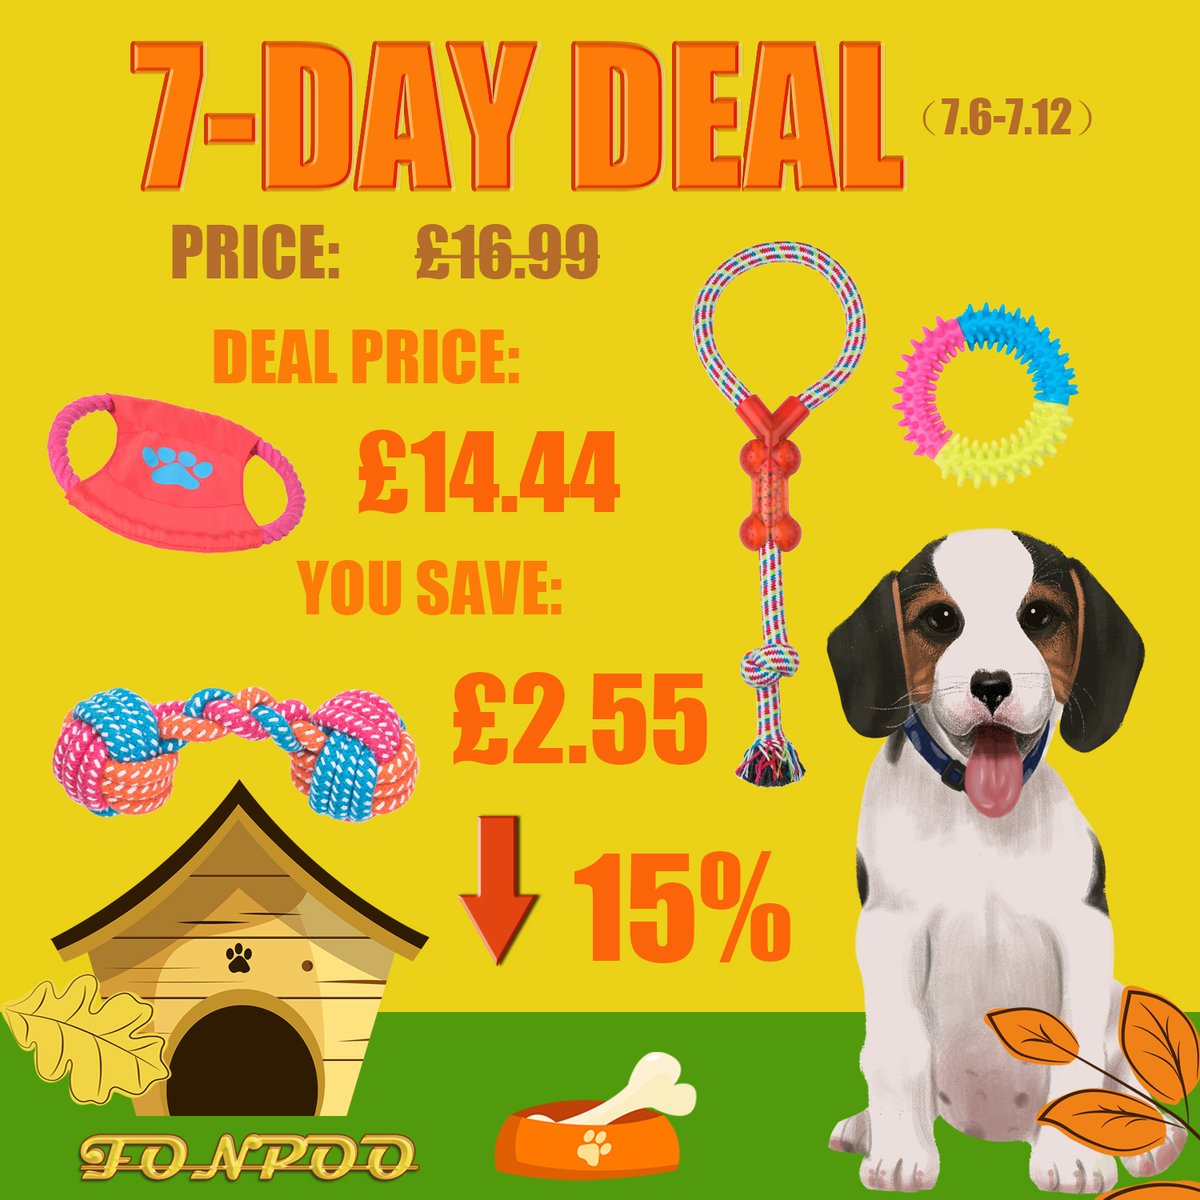 Looking for Dog Toy???Chase this opportunity, 7-Day-Deal, buy happiness for you lovely dog~#FONPOO #dogtoy #Amazon #Deal #discount  [Get it from Amazon:https://amzn.to/2DiYbeQ pic.twitter.com/jqkLKsZHWi